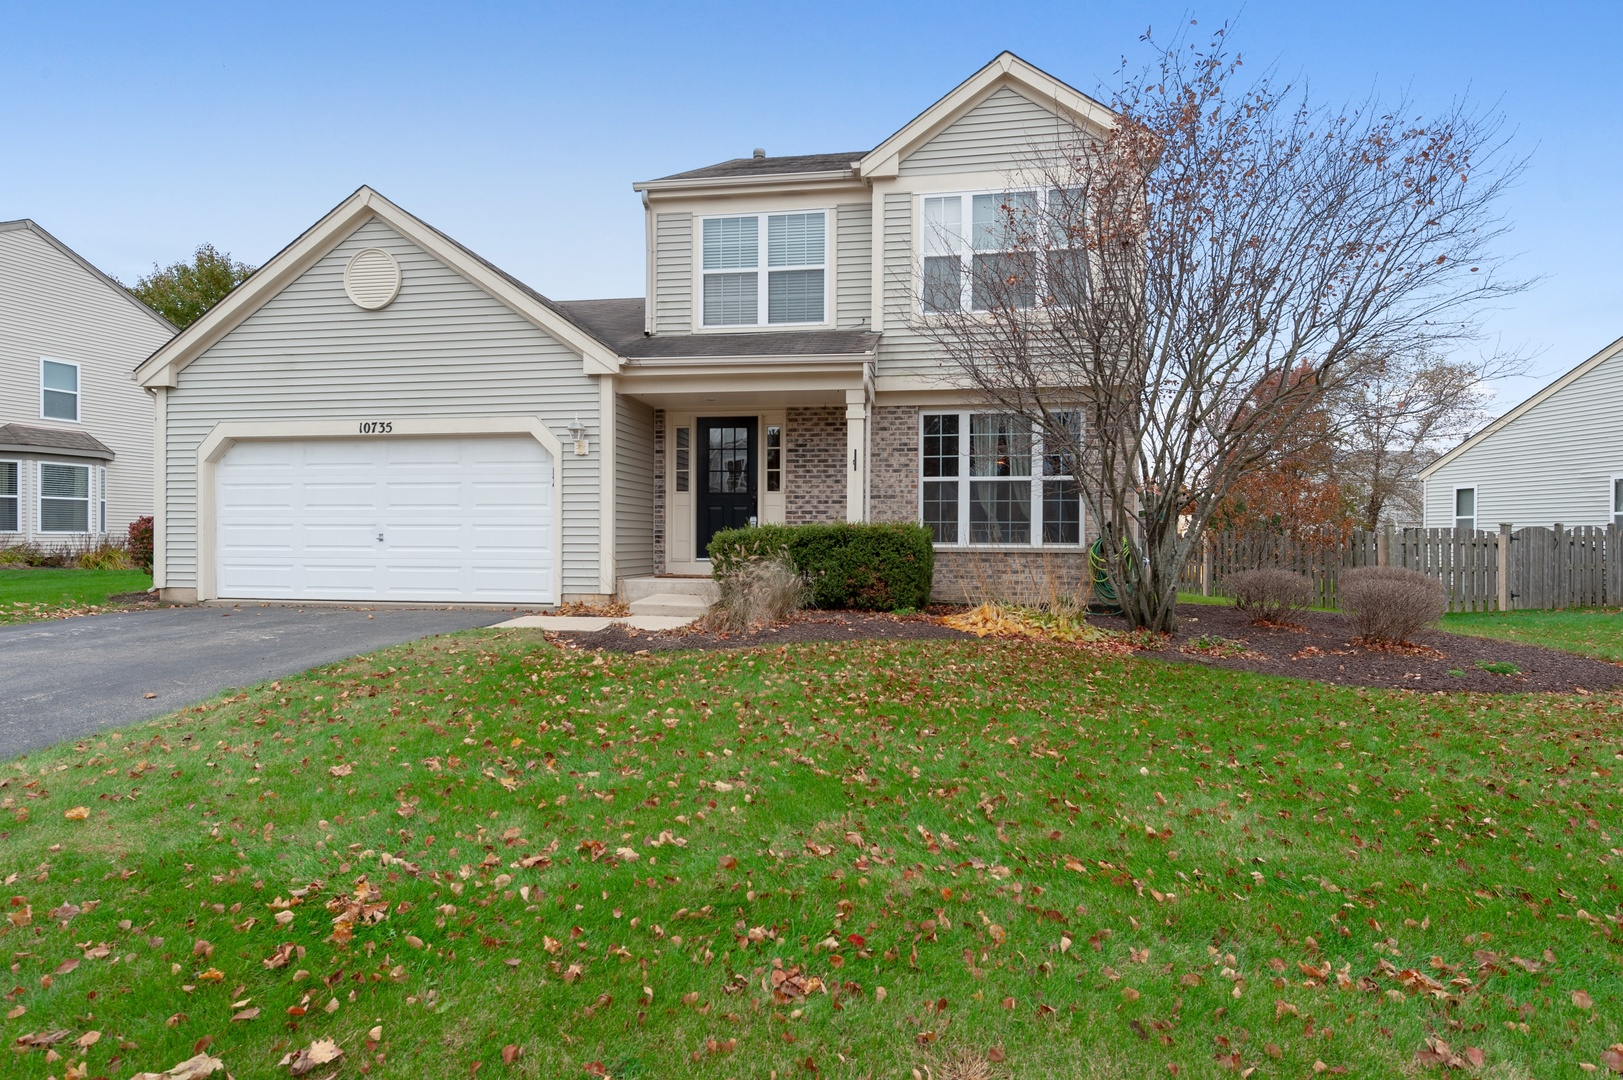 Photo for 10735 Grand Canyon Avenue, Huntley, IL 60142 (MLS # 10568290)